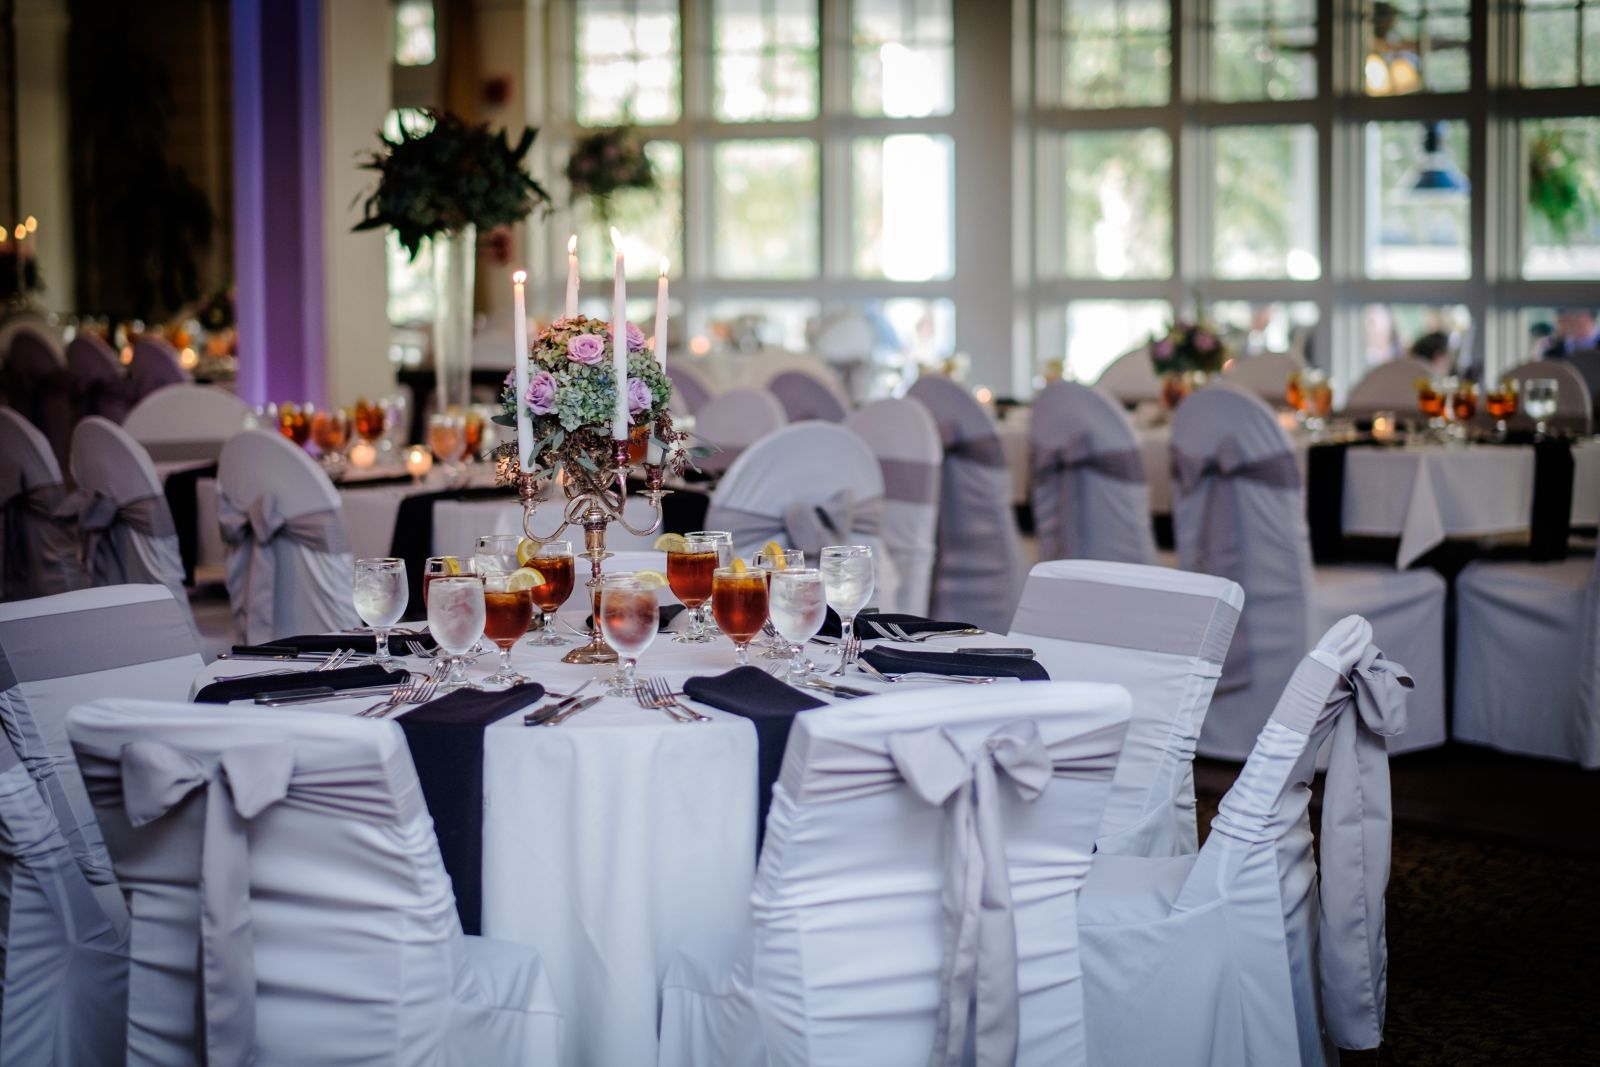 Banquets and Events at Coosaw Creek Country Club